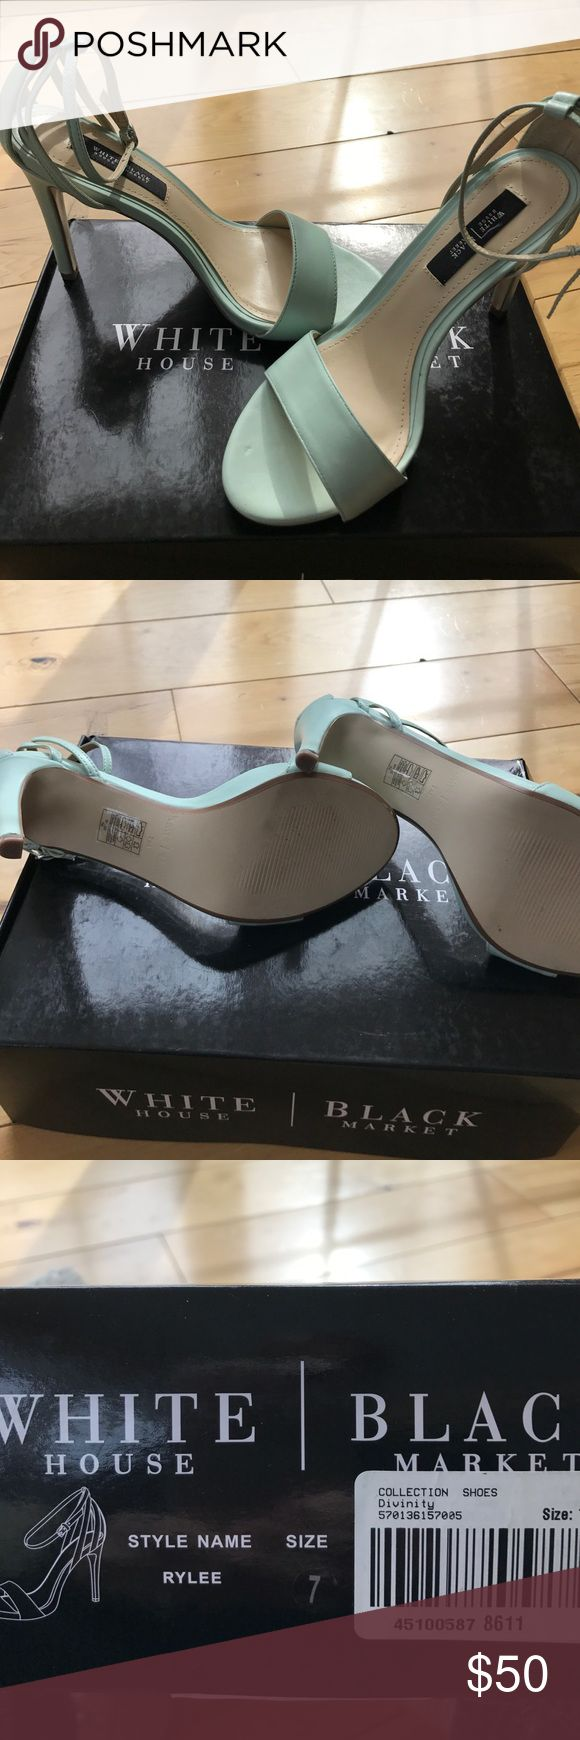 Beautiful WHBM Mint Green Strappy Heels 7 These strappy sandal heels are so pretty!  A beautiful mint green color just perfect for those summer dresses!  They are brand new and will come in their original box with dust covers. White House Black Market Shoes Heels